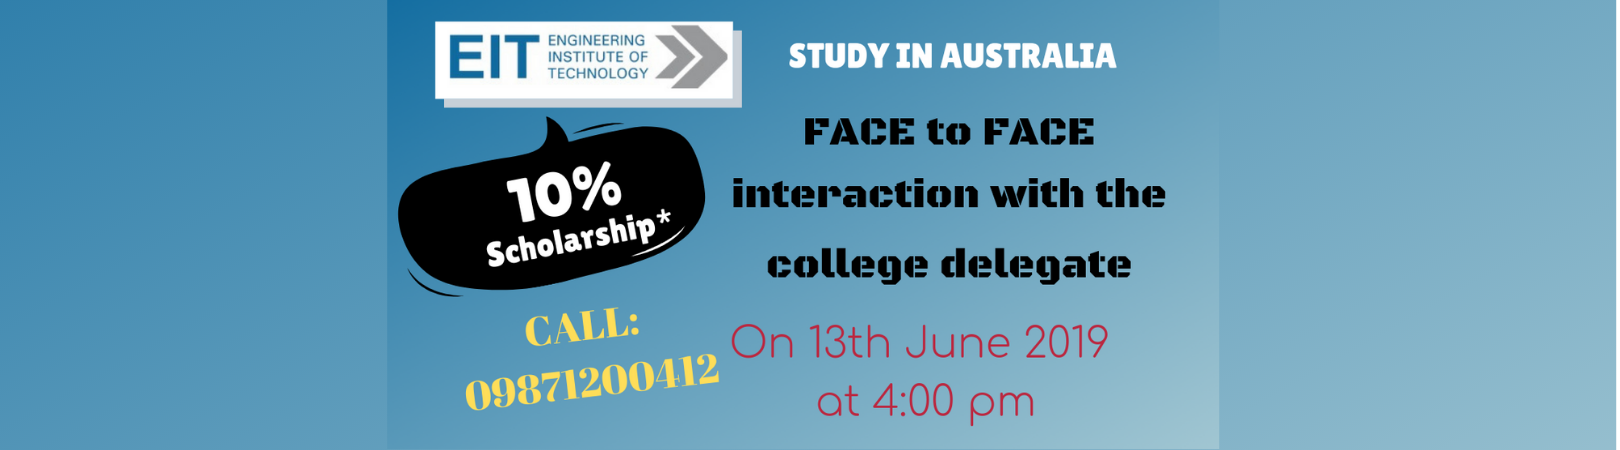 Face to Face Interaction with The Engineering Institute of Technology (EIT) delegate